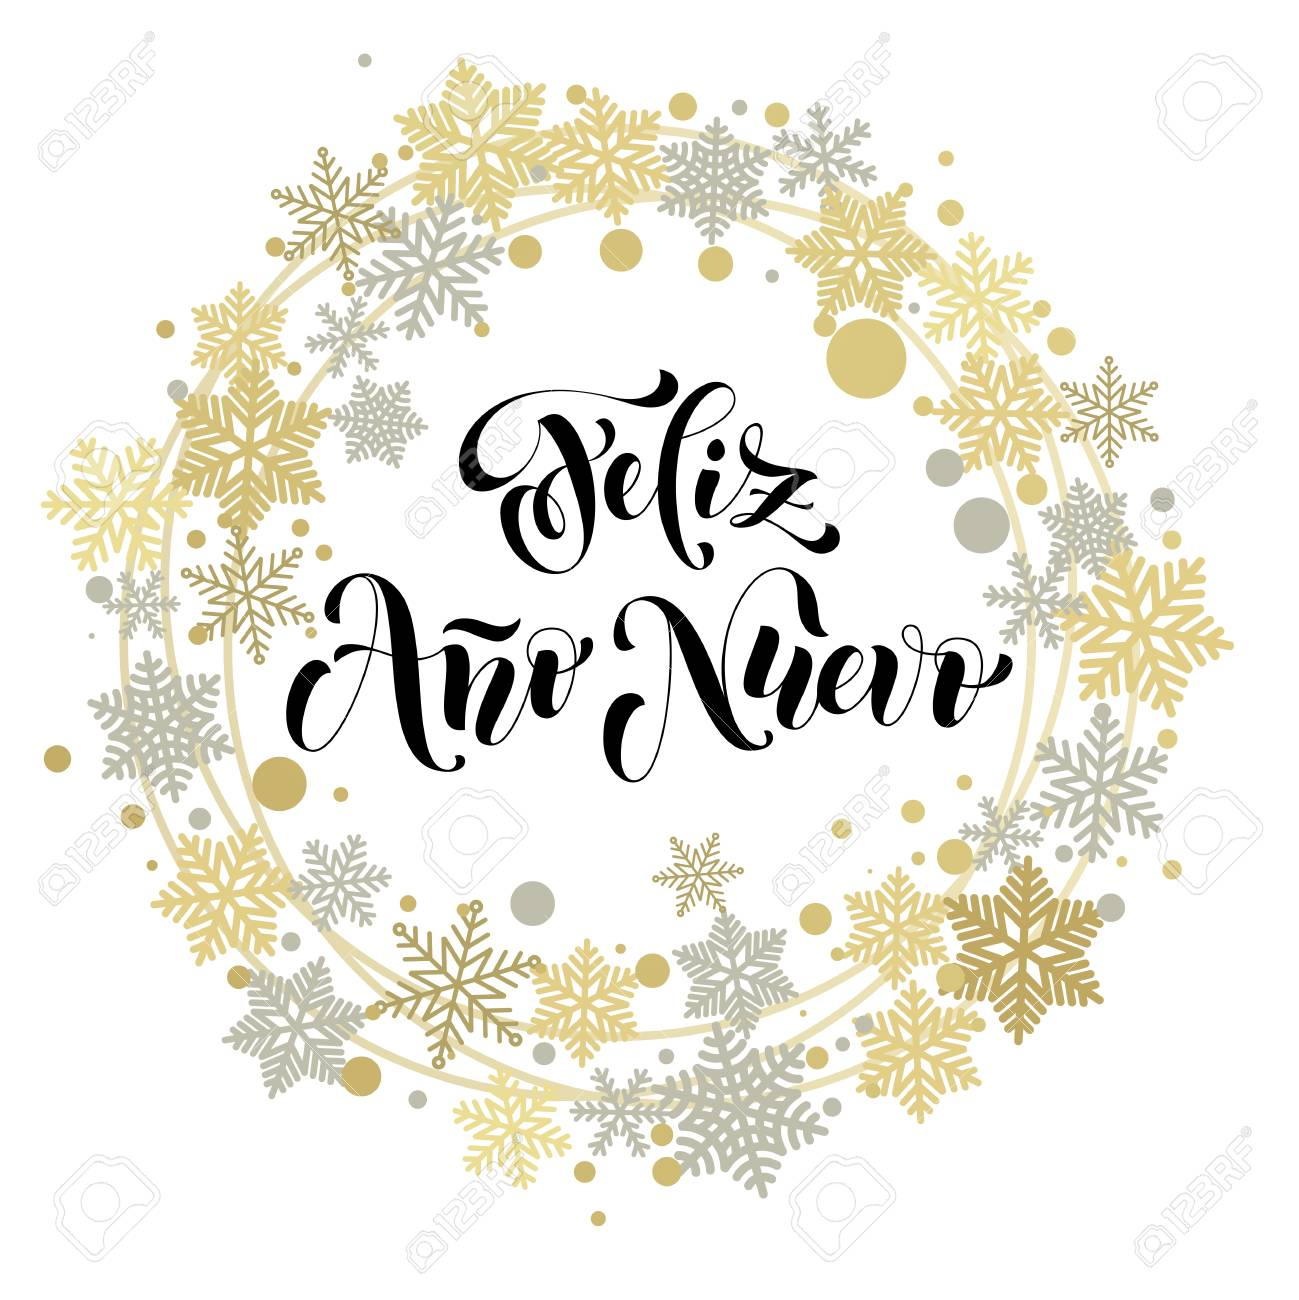 Happy New Year in Spanish text for greeting card. Feliz Ano Nuevo...